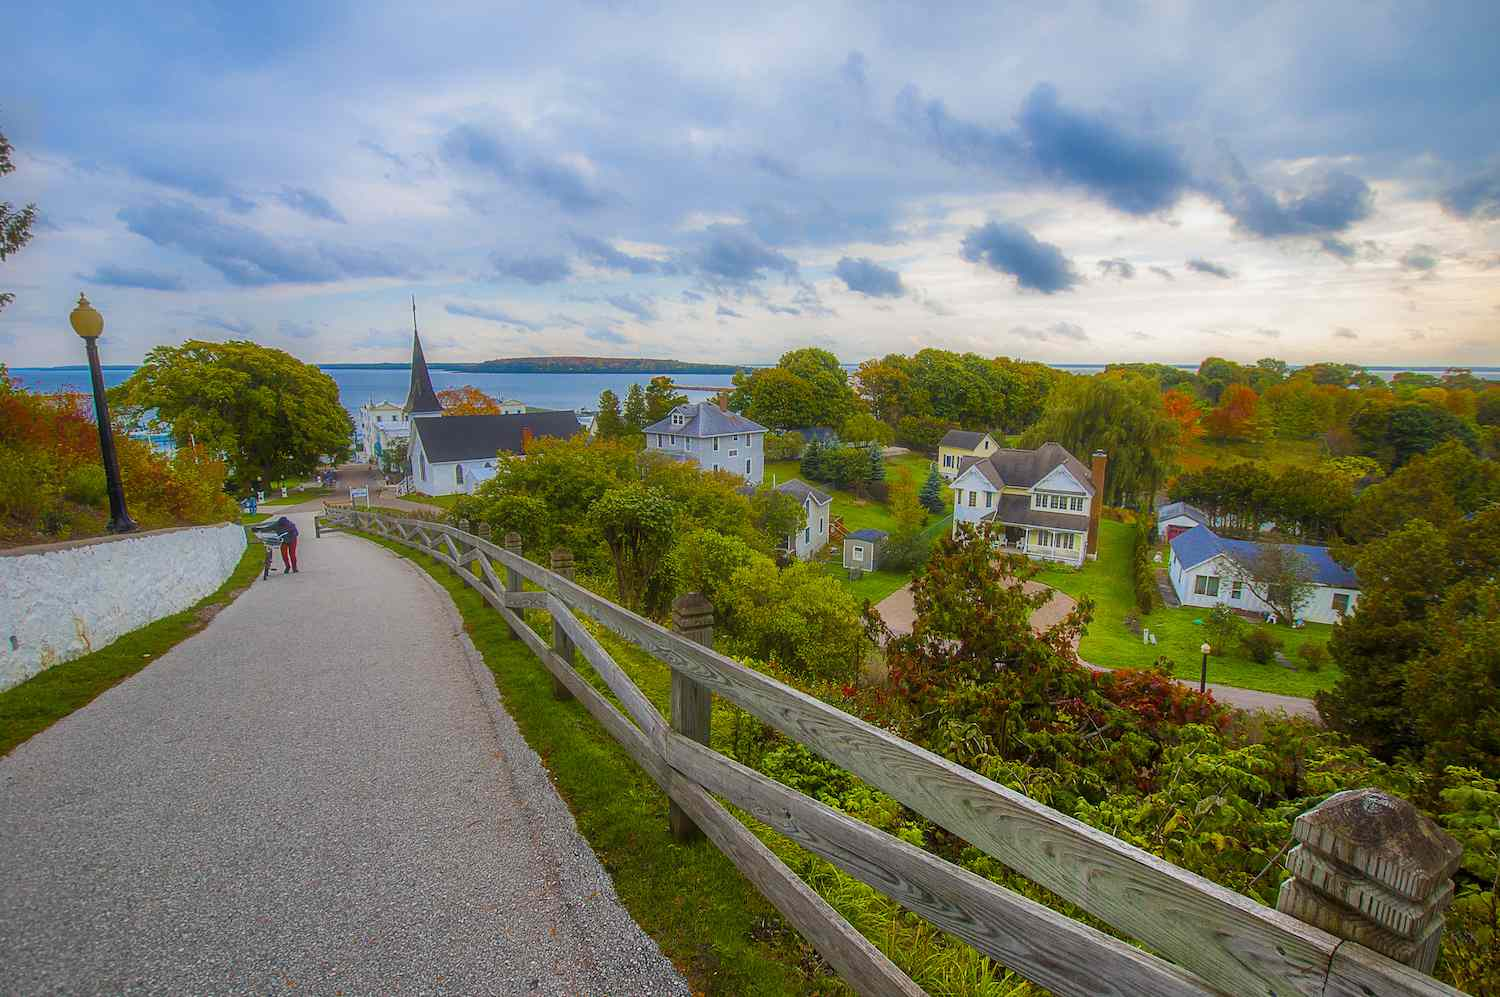 A person walks a bicycle up a path on Mackinac Island in Michigan